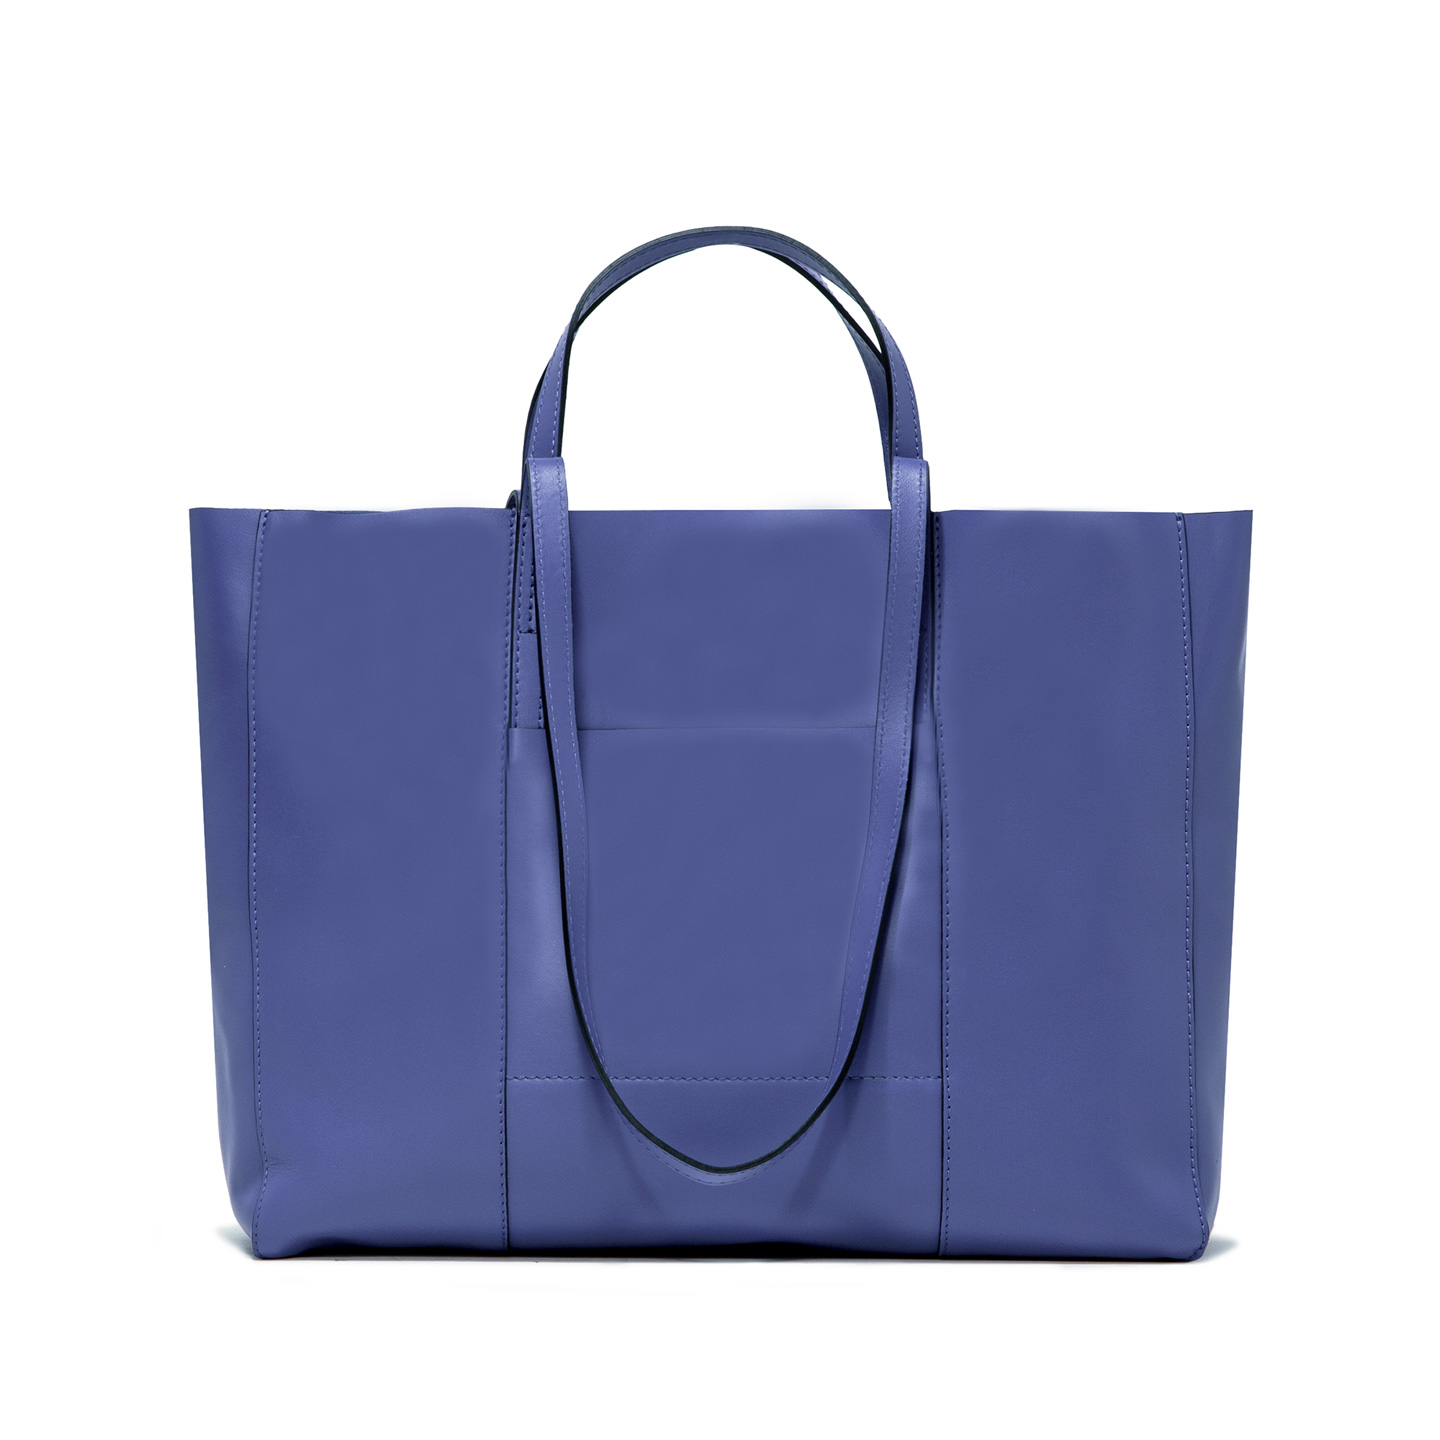 GIANNI CHIARINI: SUPERLIGHT LARGE PURPLE SHOPPING BAG